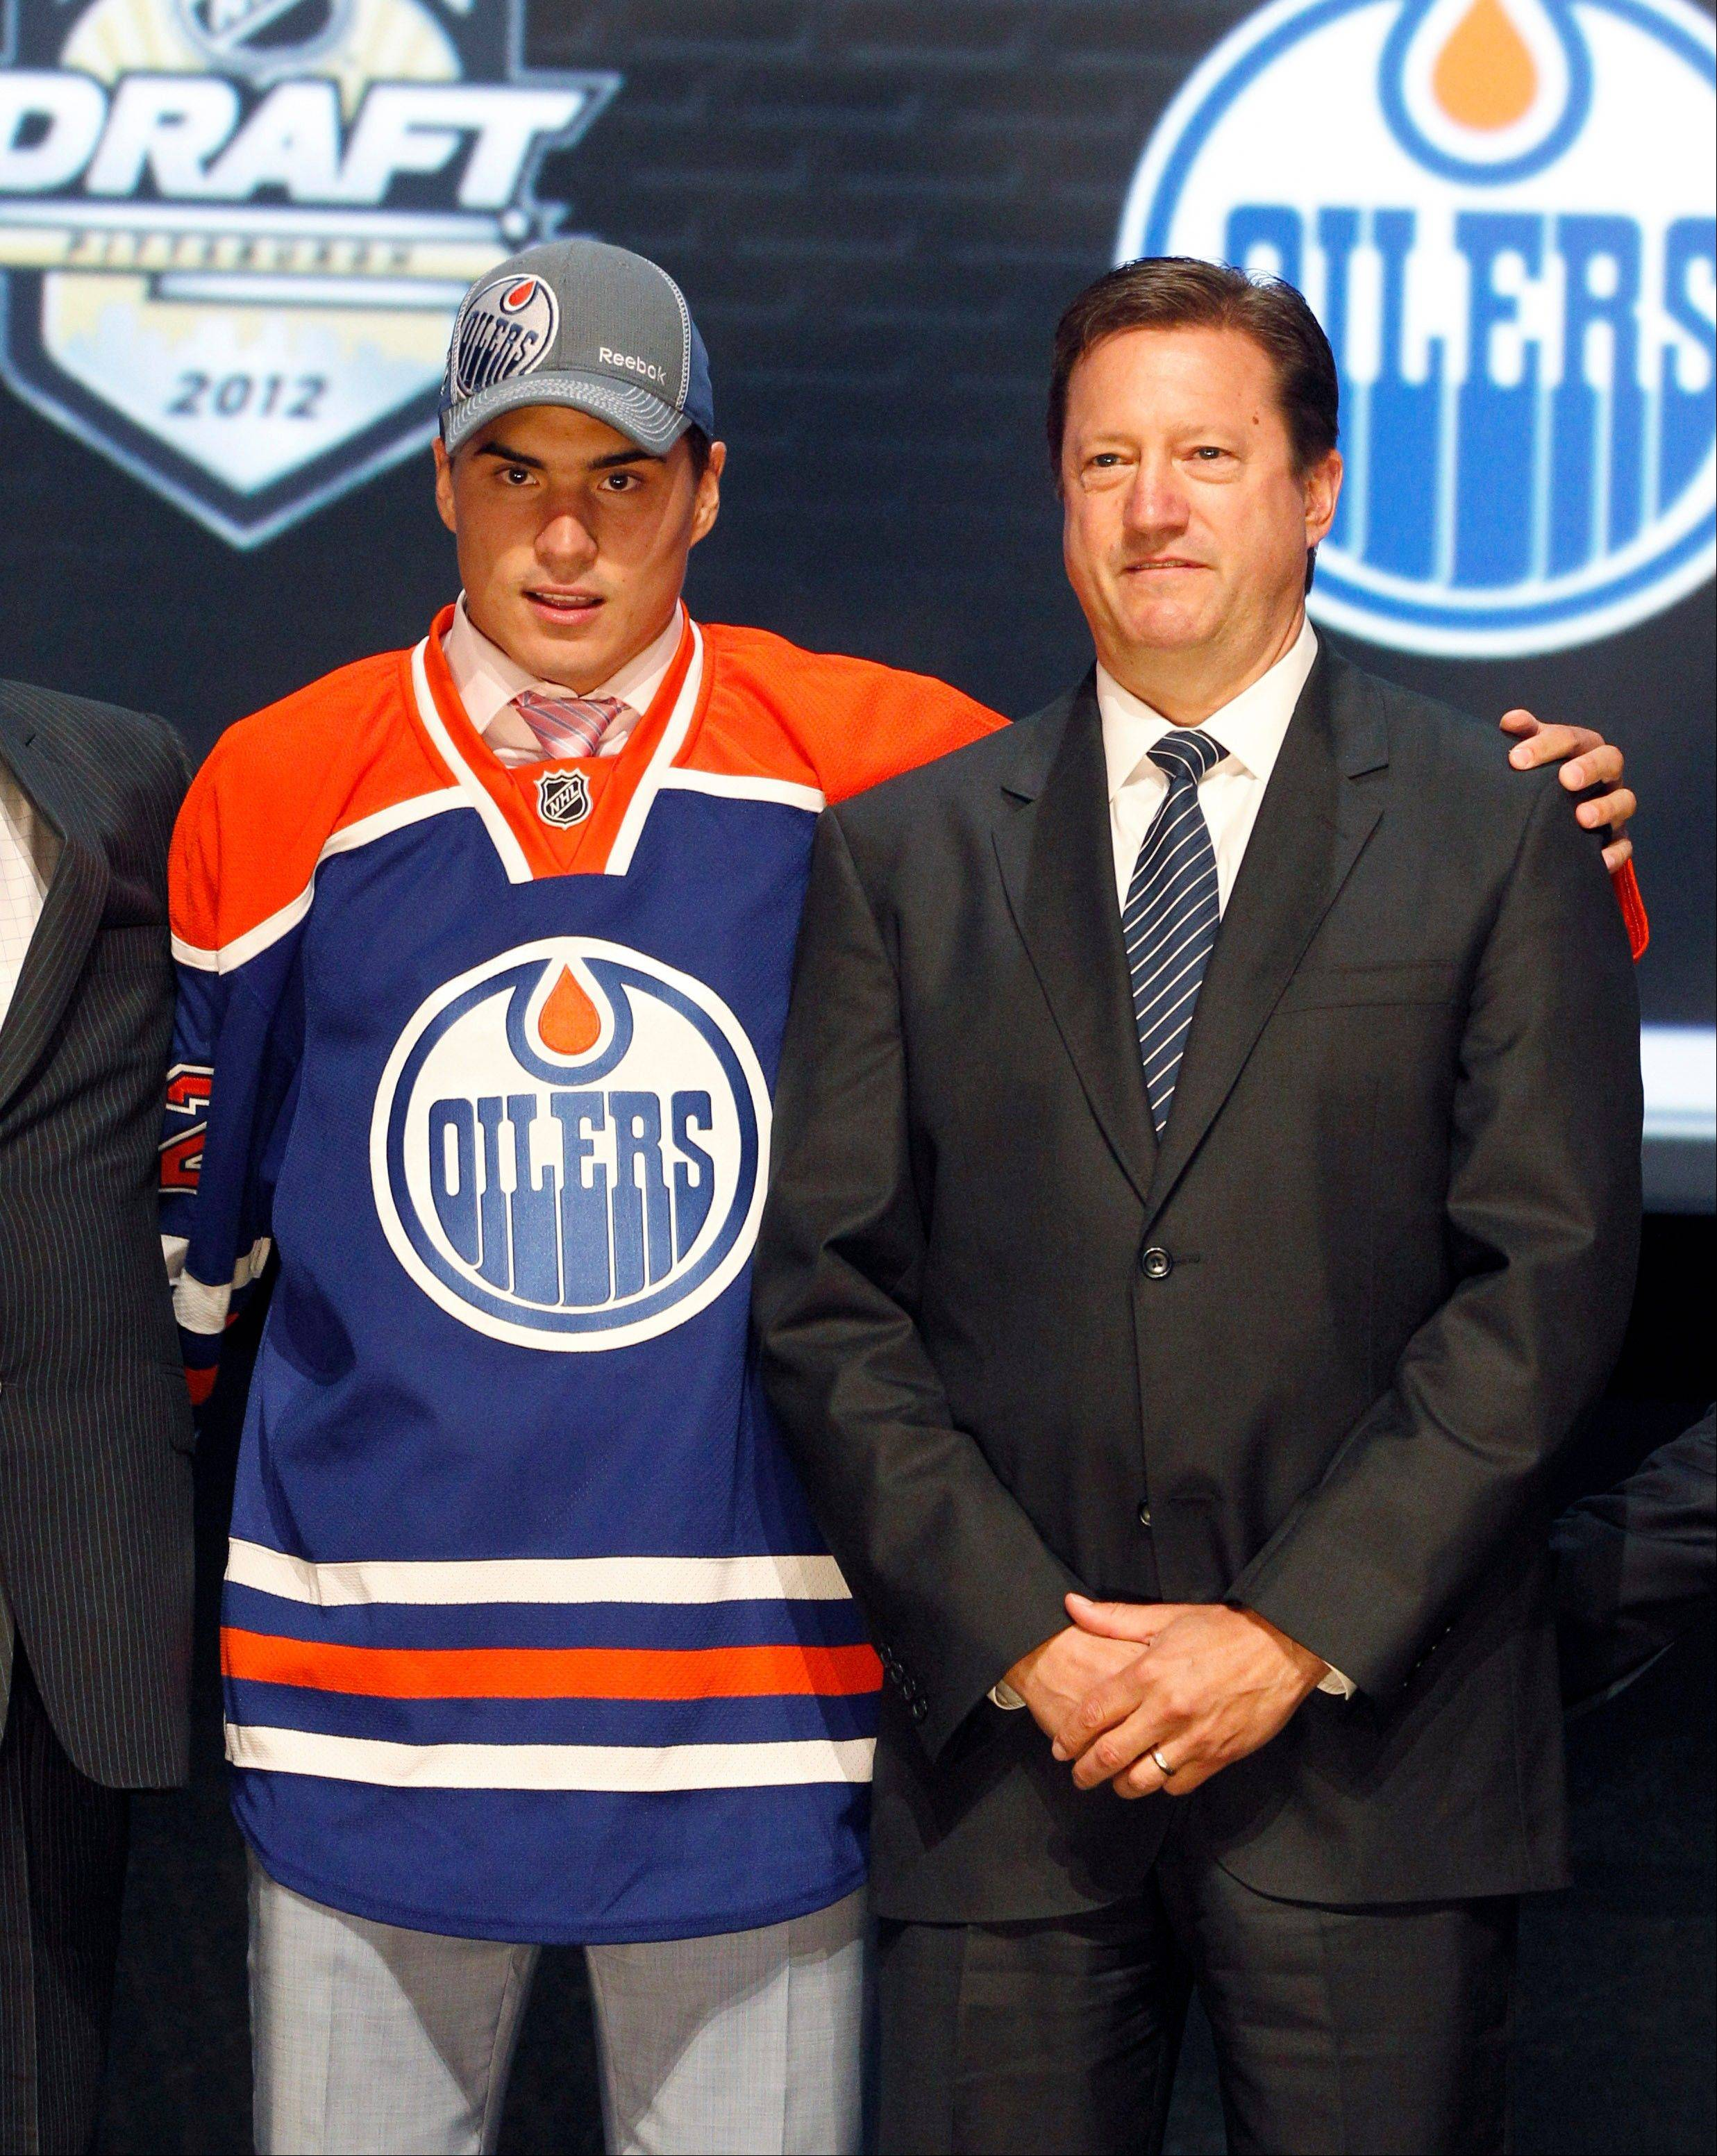 Nail Yakupov, left, a winger from Russia who was chosen first overall by the Edmonton Oilers in the first round of the NHL hockey draft, stands with Oilers general manager Steve Tambellini on Friday in Pittsburgh.